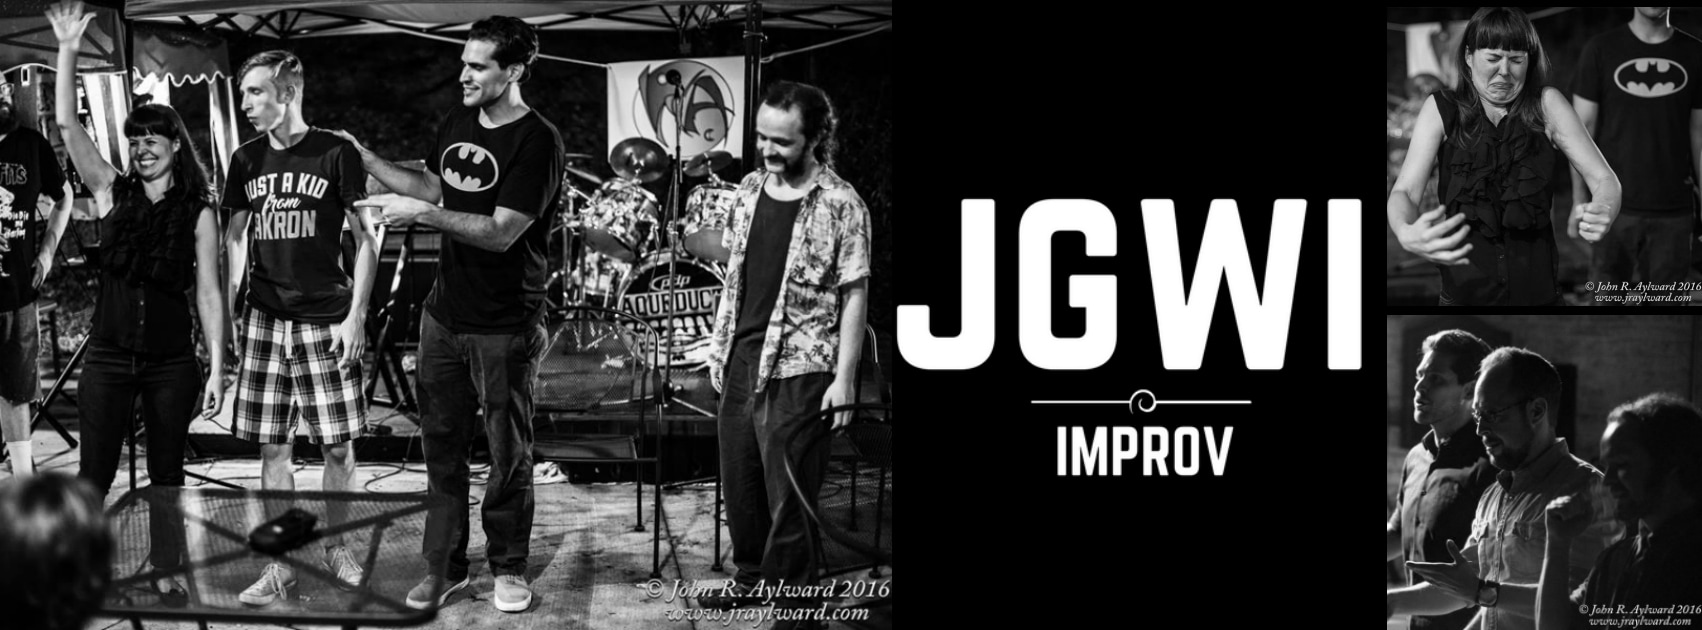 7pm - Doors  8pm - Performance from Just Go With It Improv  9pm - Workshop  Just Go With It Improv is offering an improv workshop, open to anyone who would like to learn how to play some fun improv theatre games, or would like to brush-up on some improv skills!  Just Go With It Improv is a fun and energized improvisational collaborative aimed at providing opportunities for local performing artists to improve their craft through improvisation. We view ourselves as an experimental group and one that engages with the local community and local artists of all disciplines.   RSVP to the Facebook event page!    Tickets are available here!   Tickets:  $8 - show only  $13 - show + workshop  ***Even if you do not wish to participate in the workshop, please stay and enjoy the bar and watch the workshop.